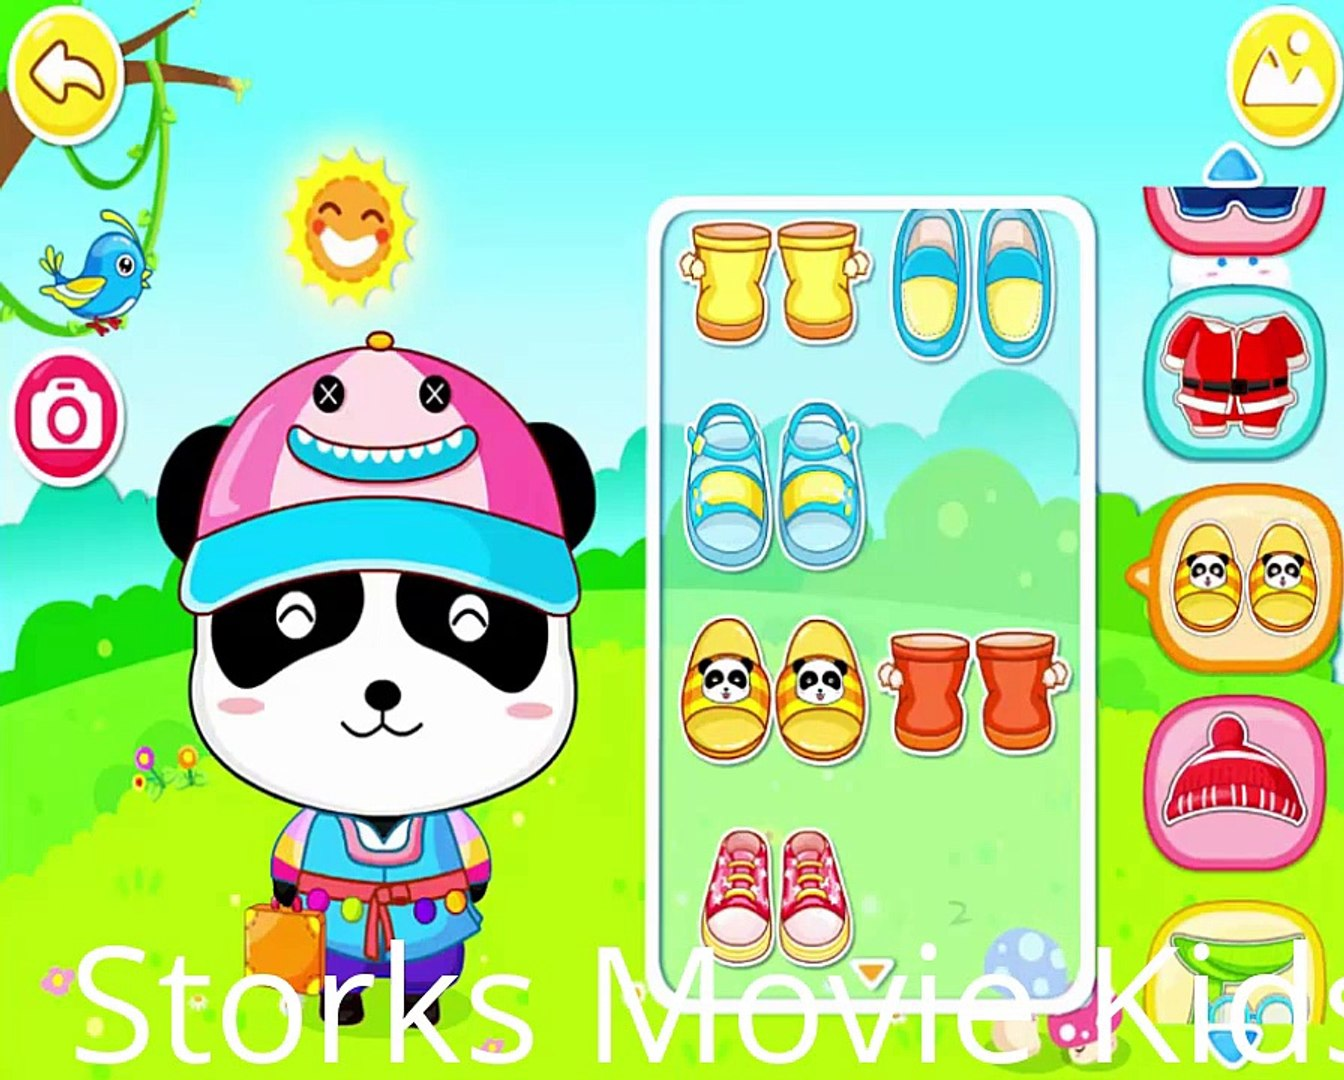 Storks Oddbods Kids - KIDS FASHION SHOW  - Toddler Games and Activities - Toddler Learning Fun